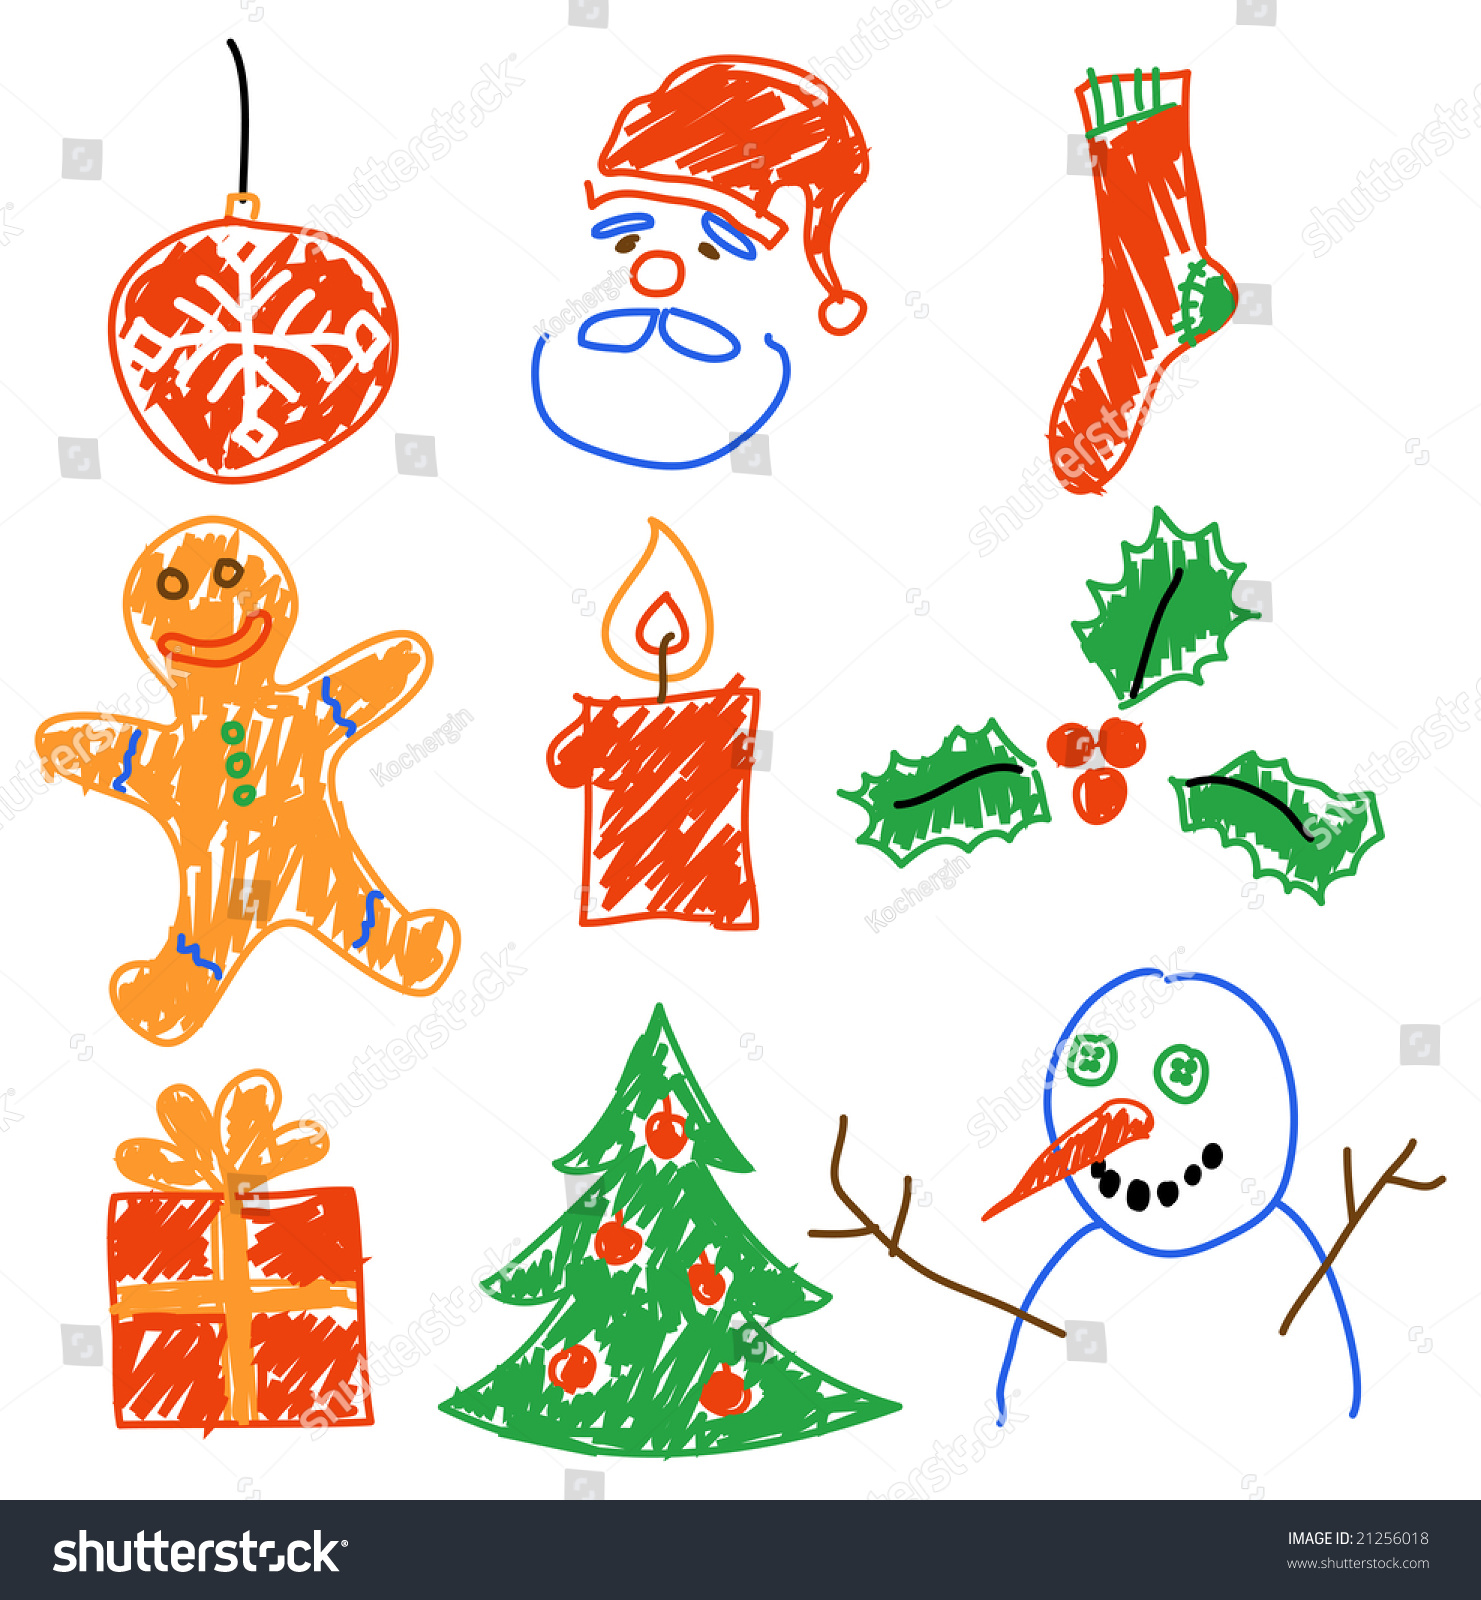 How to draw christmas tree red design hellokids com - How To Draw Christmas Tree Red Design Hellokids Com 40